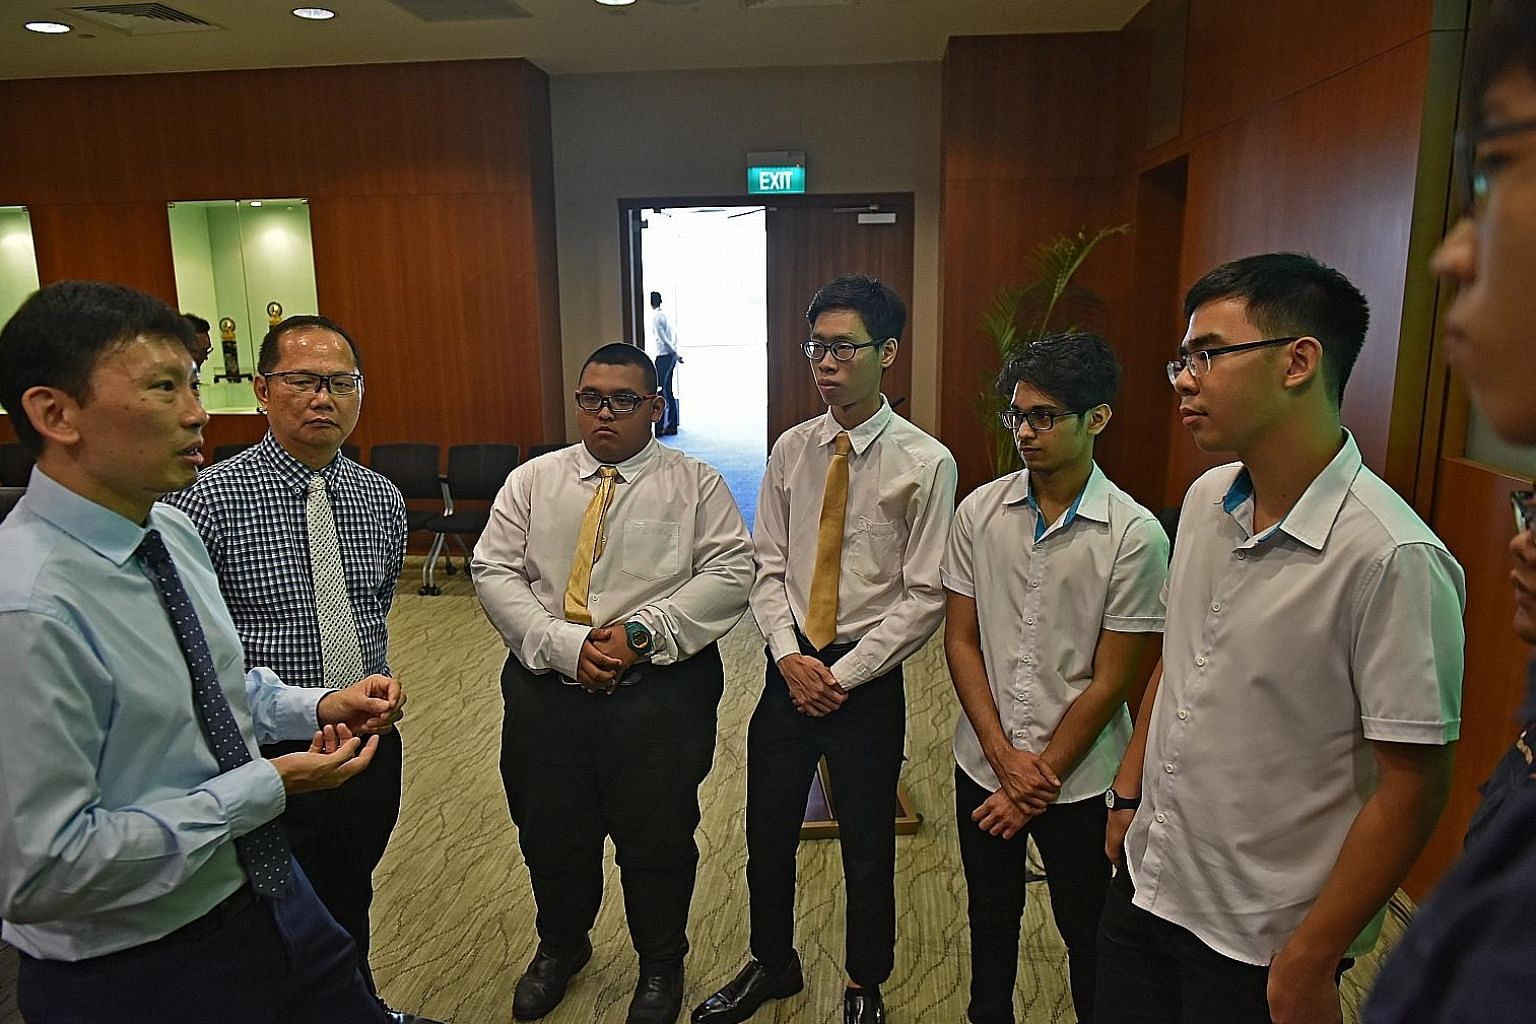 (From left) Senior Minister of State for Trade and Industry and Education Chee Hong Tat and ITE College East principal Yek Tiew Ming, with students Akid Ali Liaqaat Ali, Javiel Chng, Shaon Suppiah and Theodore Chong, at ITE Headquarters yesterday. IT